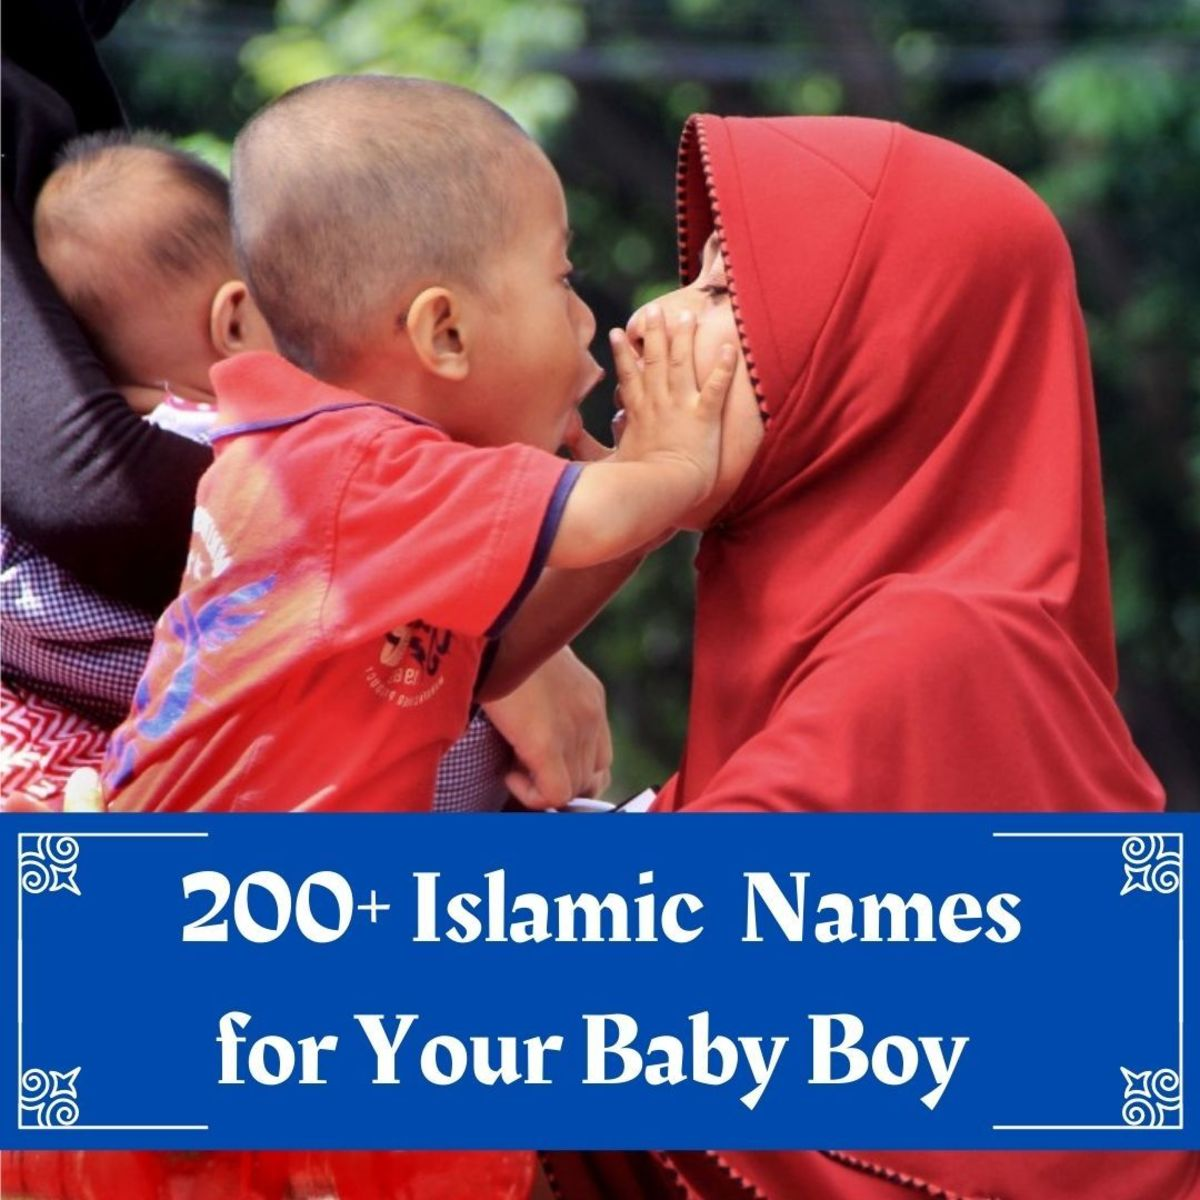 If you want to honor your religion, you should pick a name derived from the Qur'an.